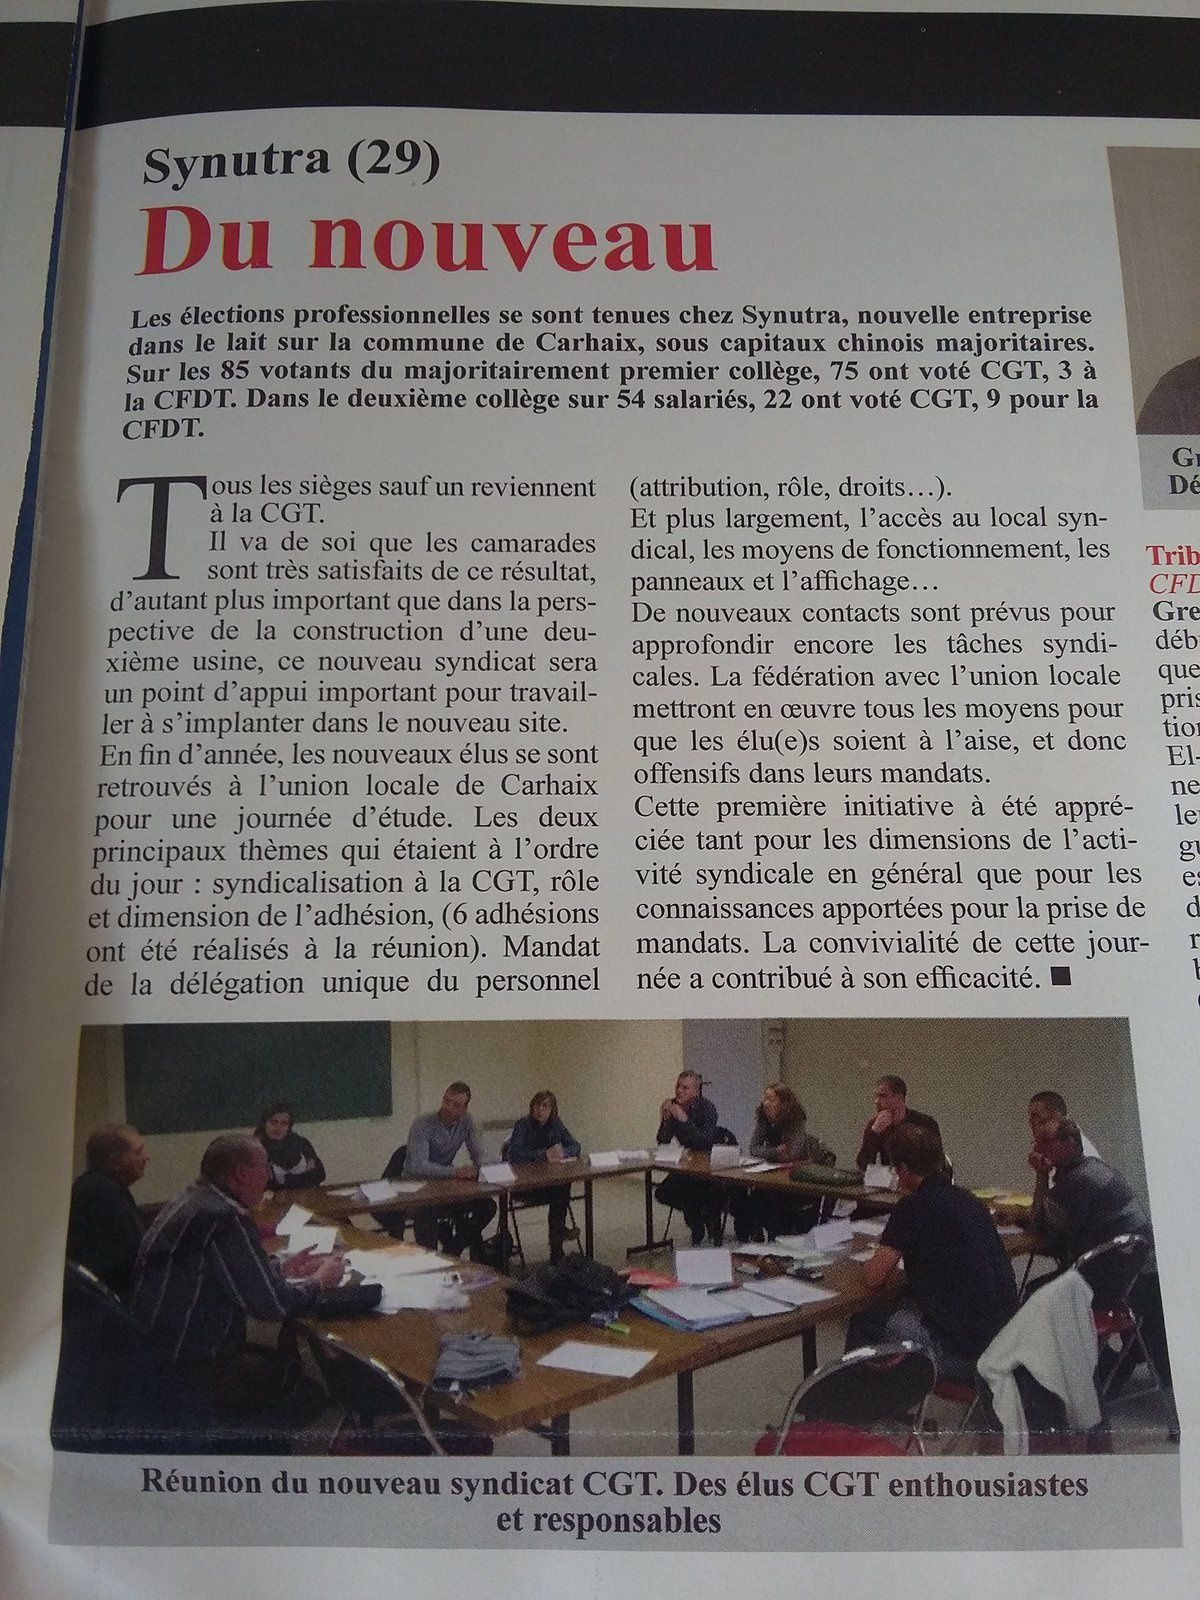 Synutra, Carhaix, Elections professionnelles, CGT